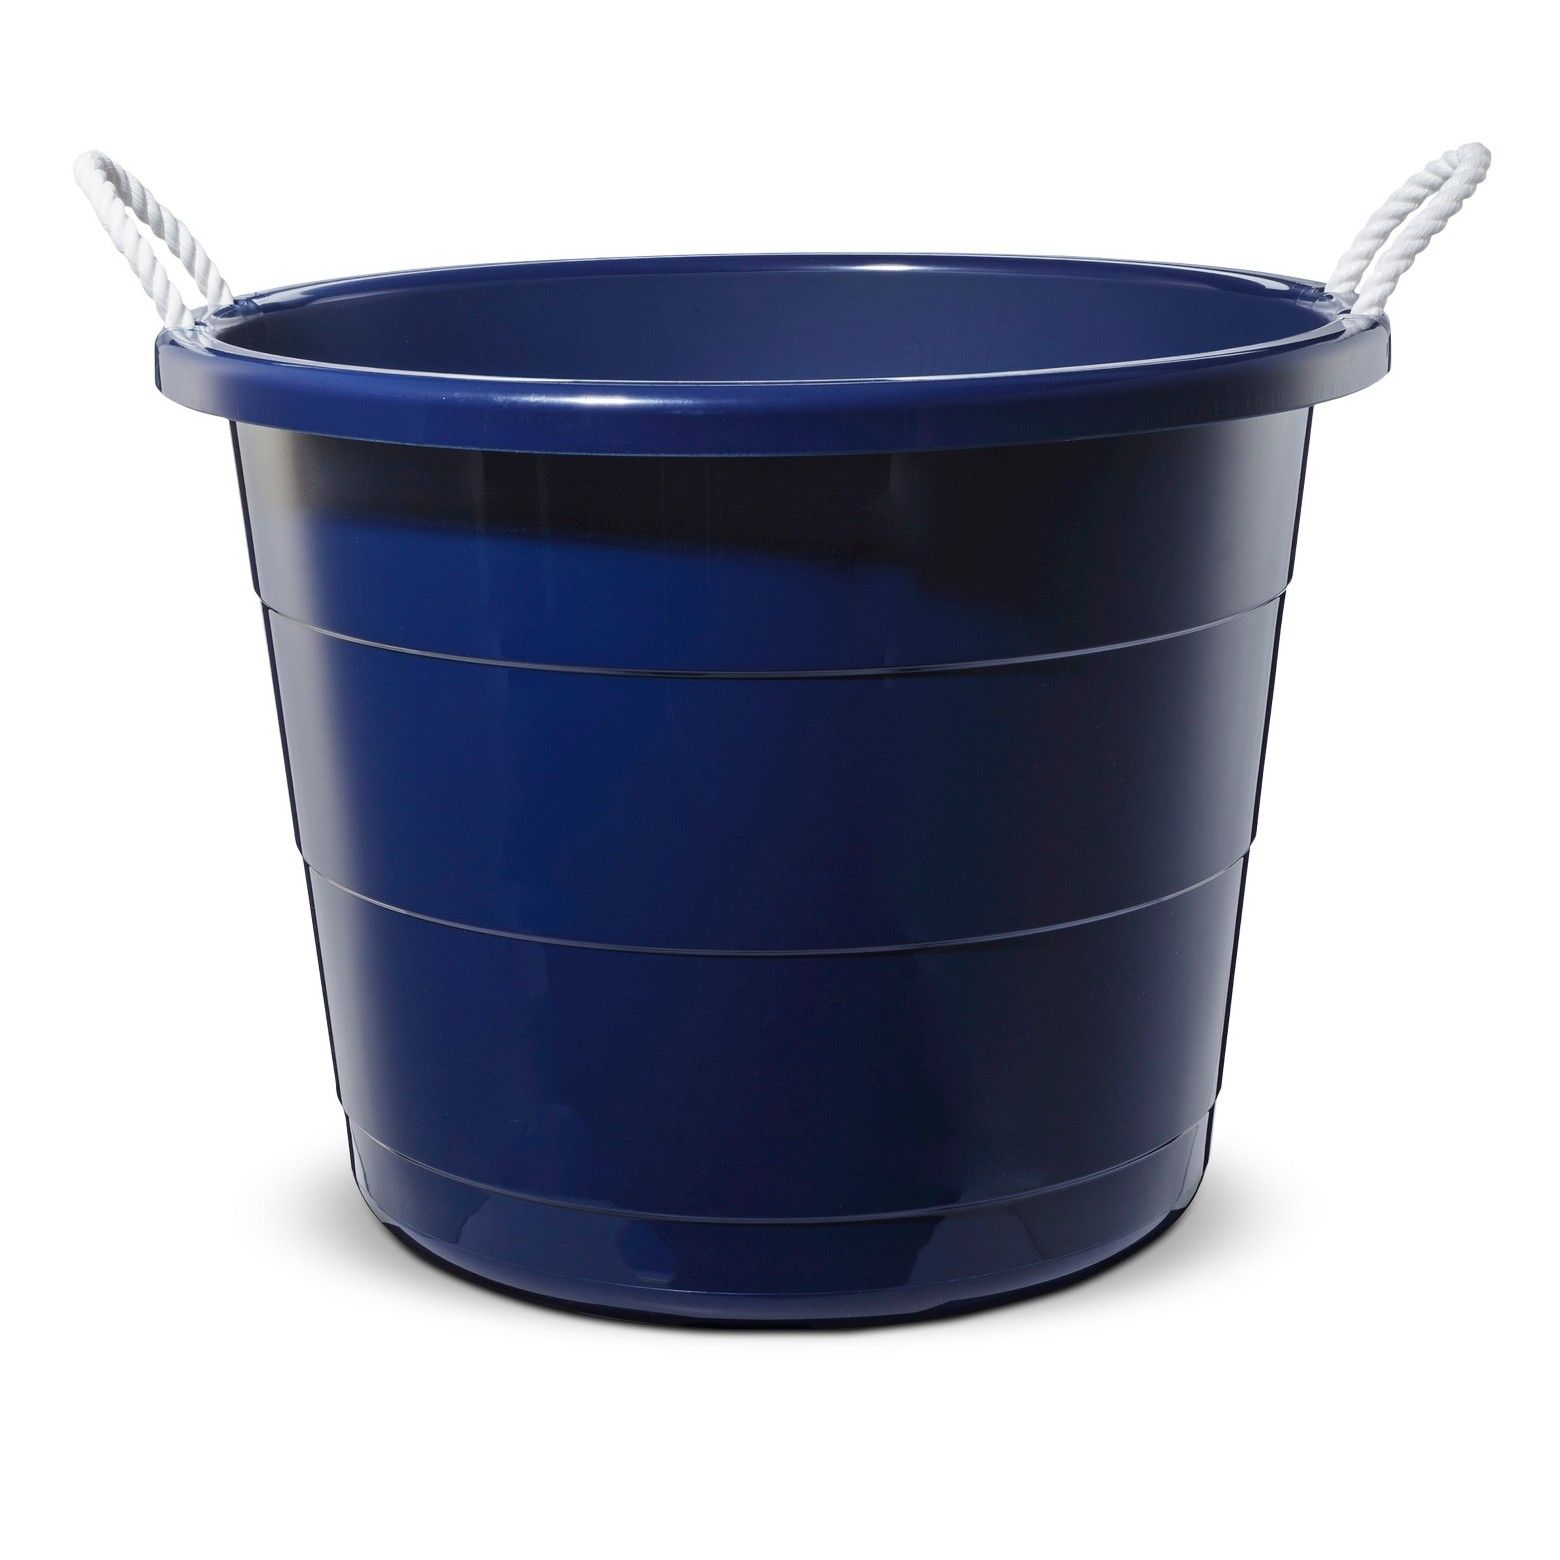 n large home plastic medium building b cement tub tubs masonry the concrete depot mixing materials tools pans mixers